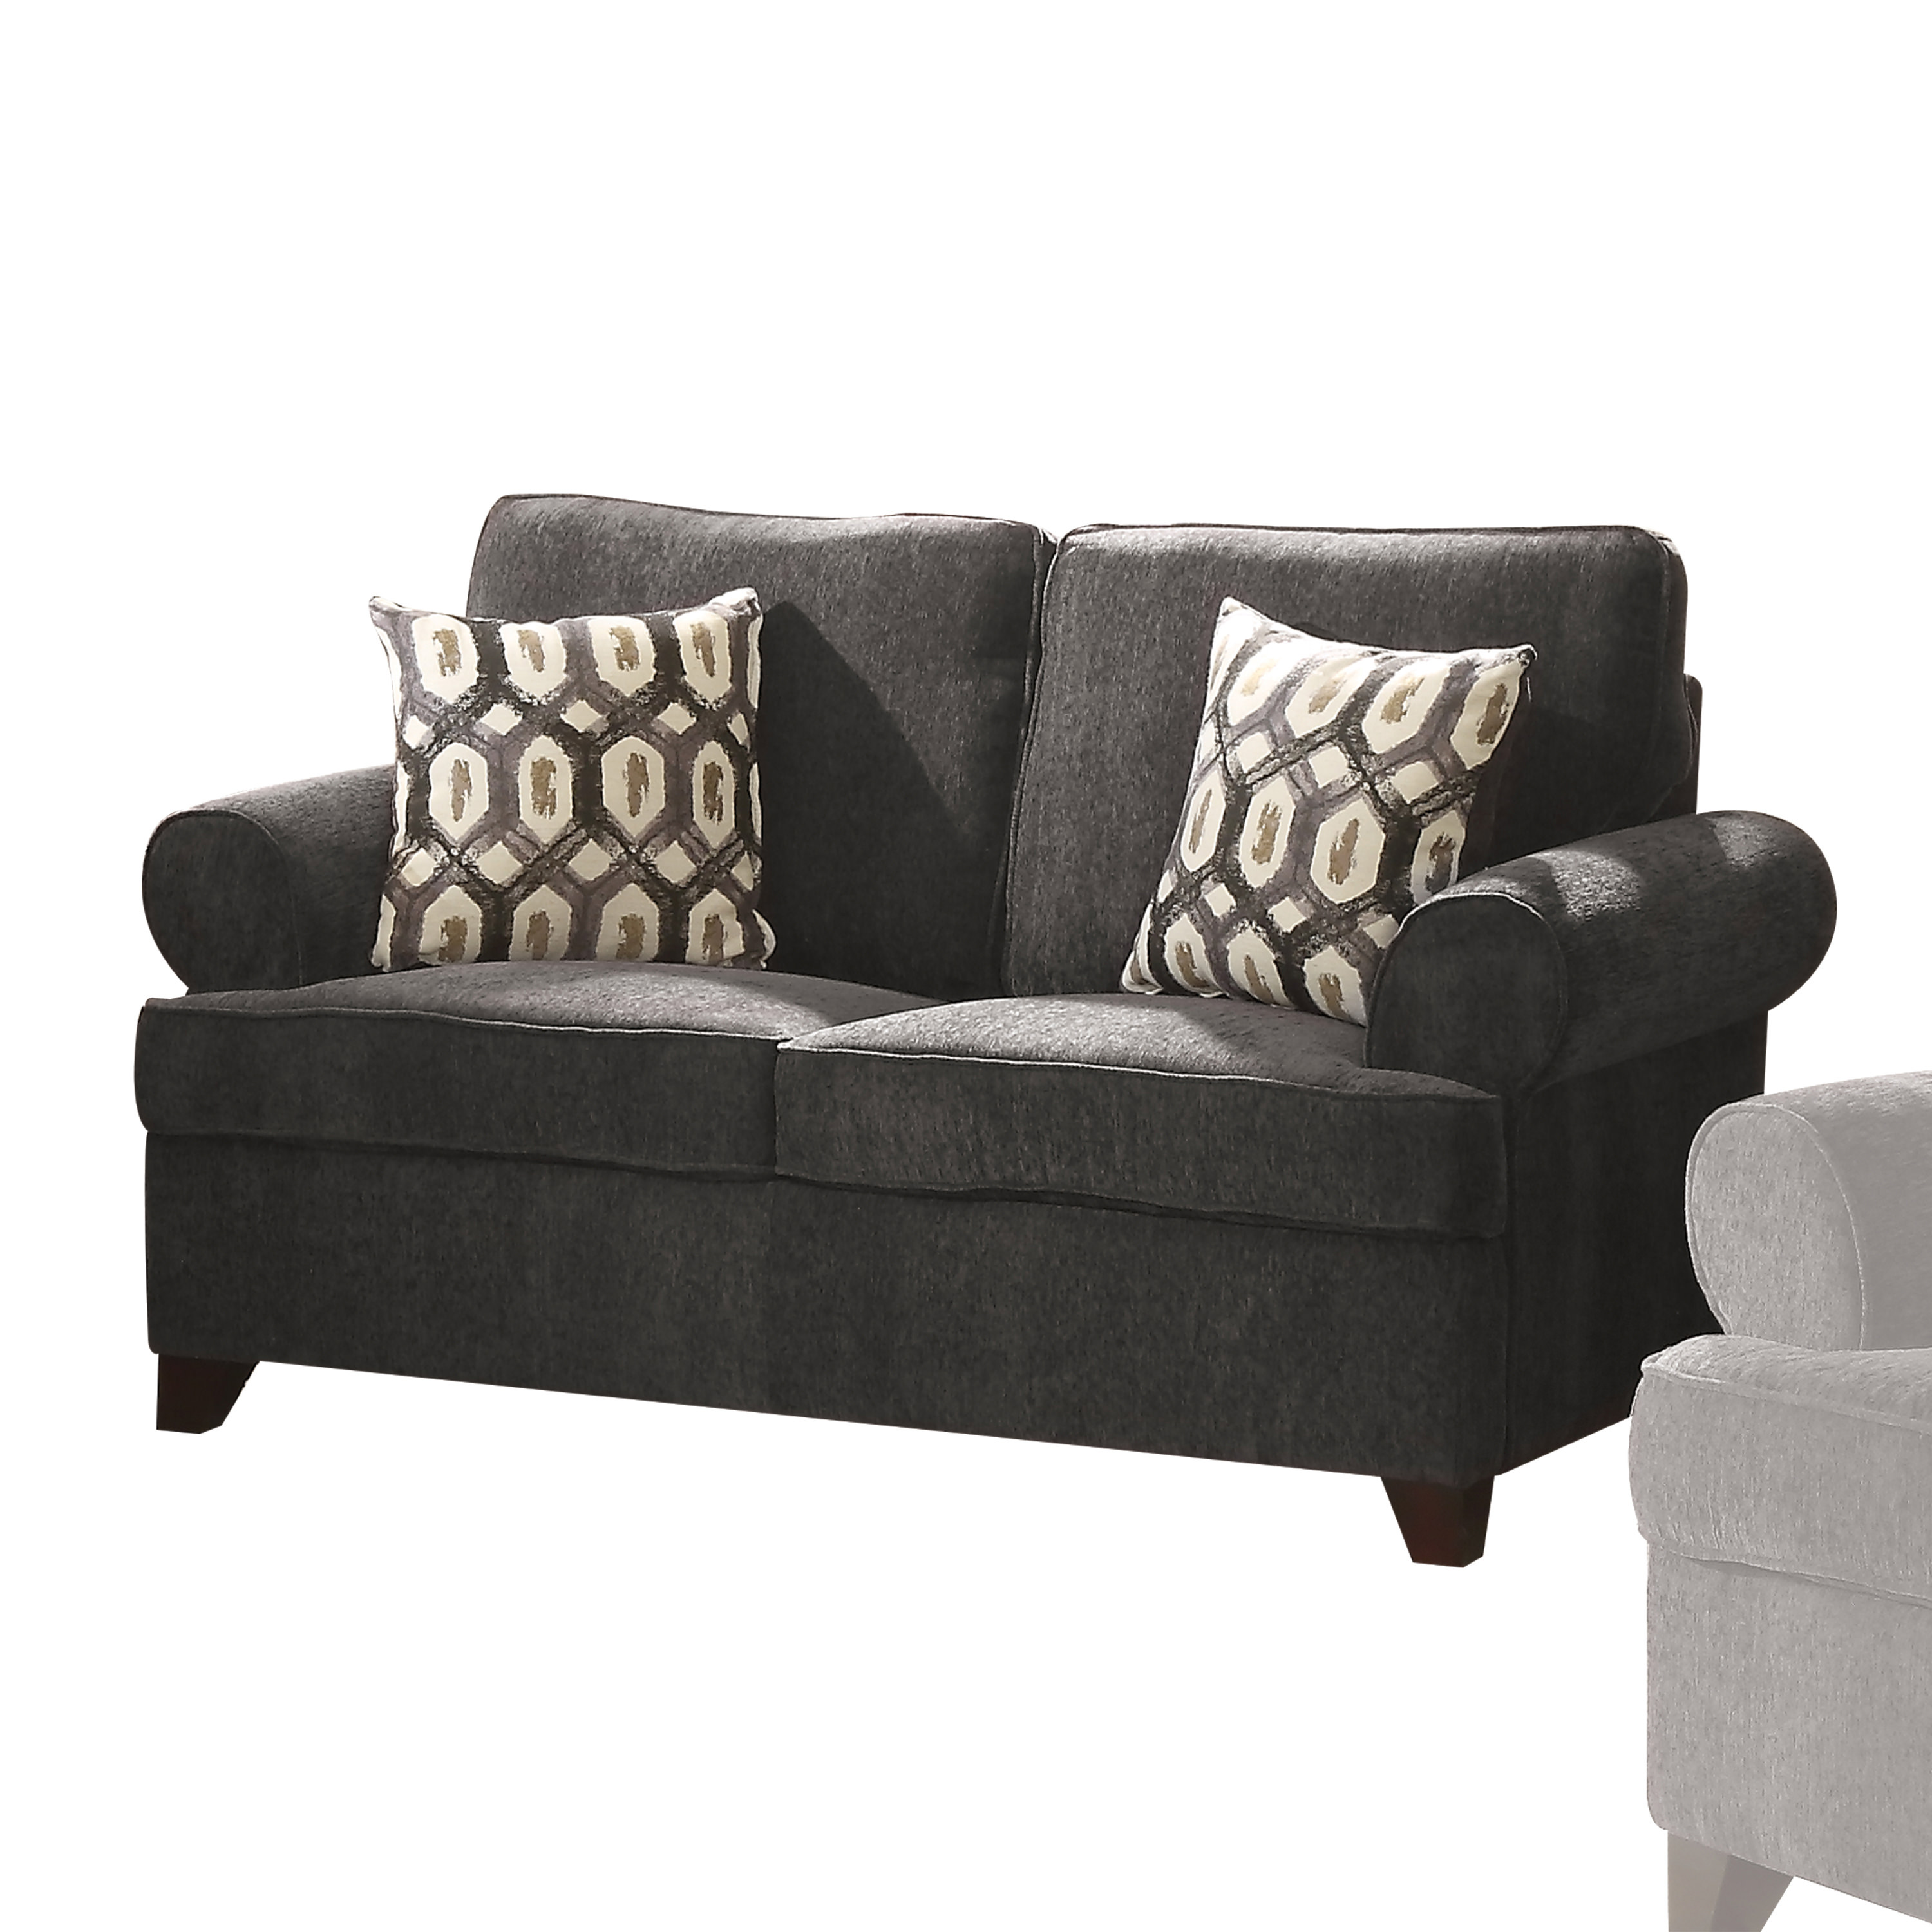 Acme Alessia Dark Gray Chenille Loveseat Sleeper with 2 Pillows